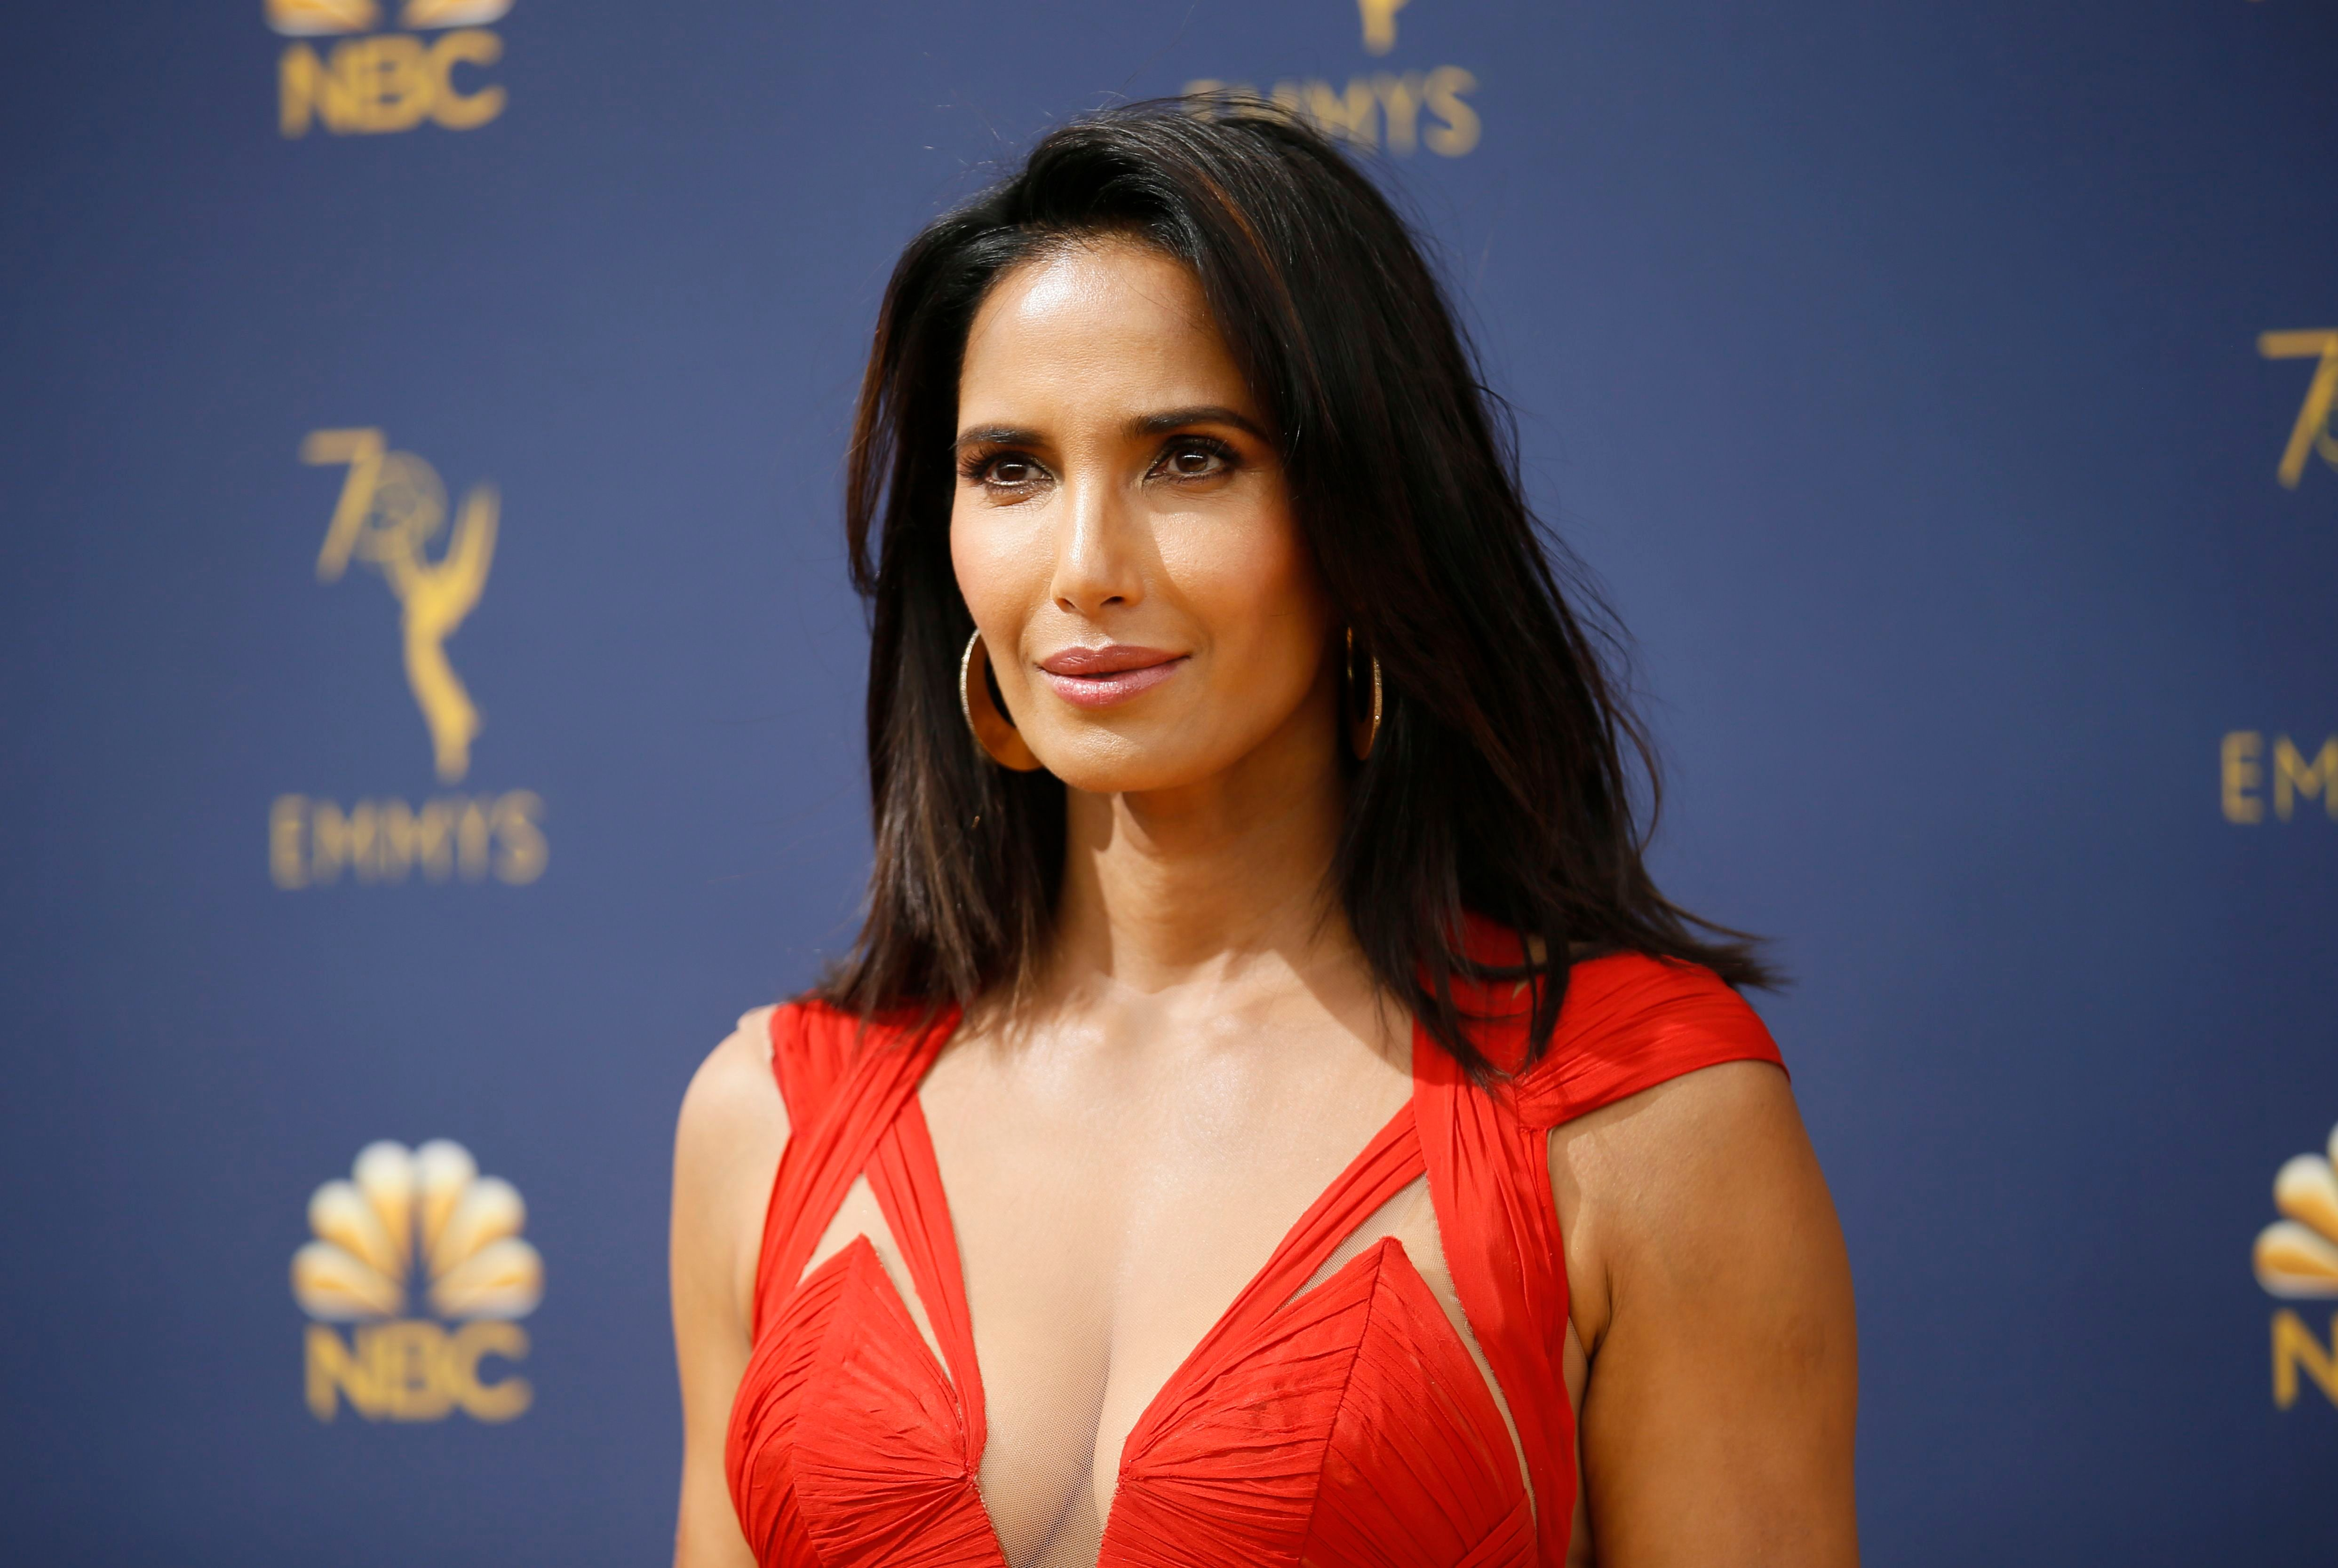 Padma Lakshmi Opened Her New York Comedy Show by Declaring, 'F*ck Louis C.K.'